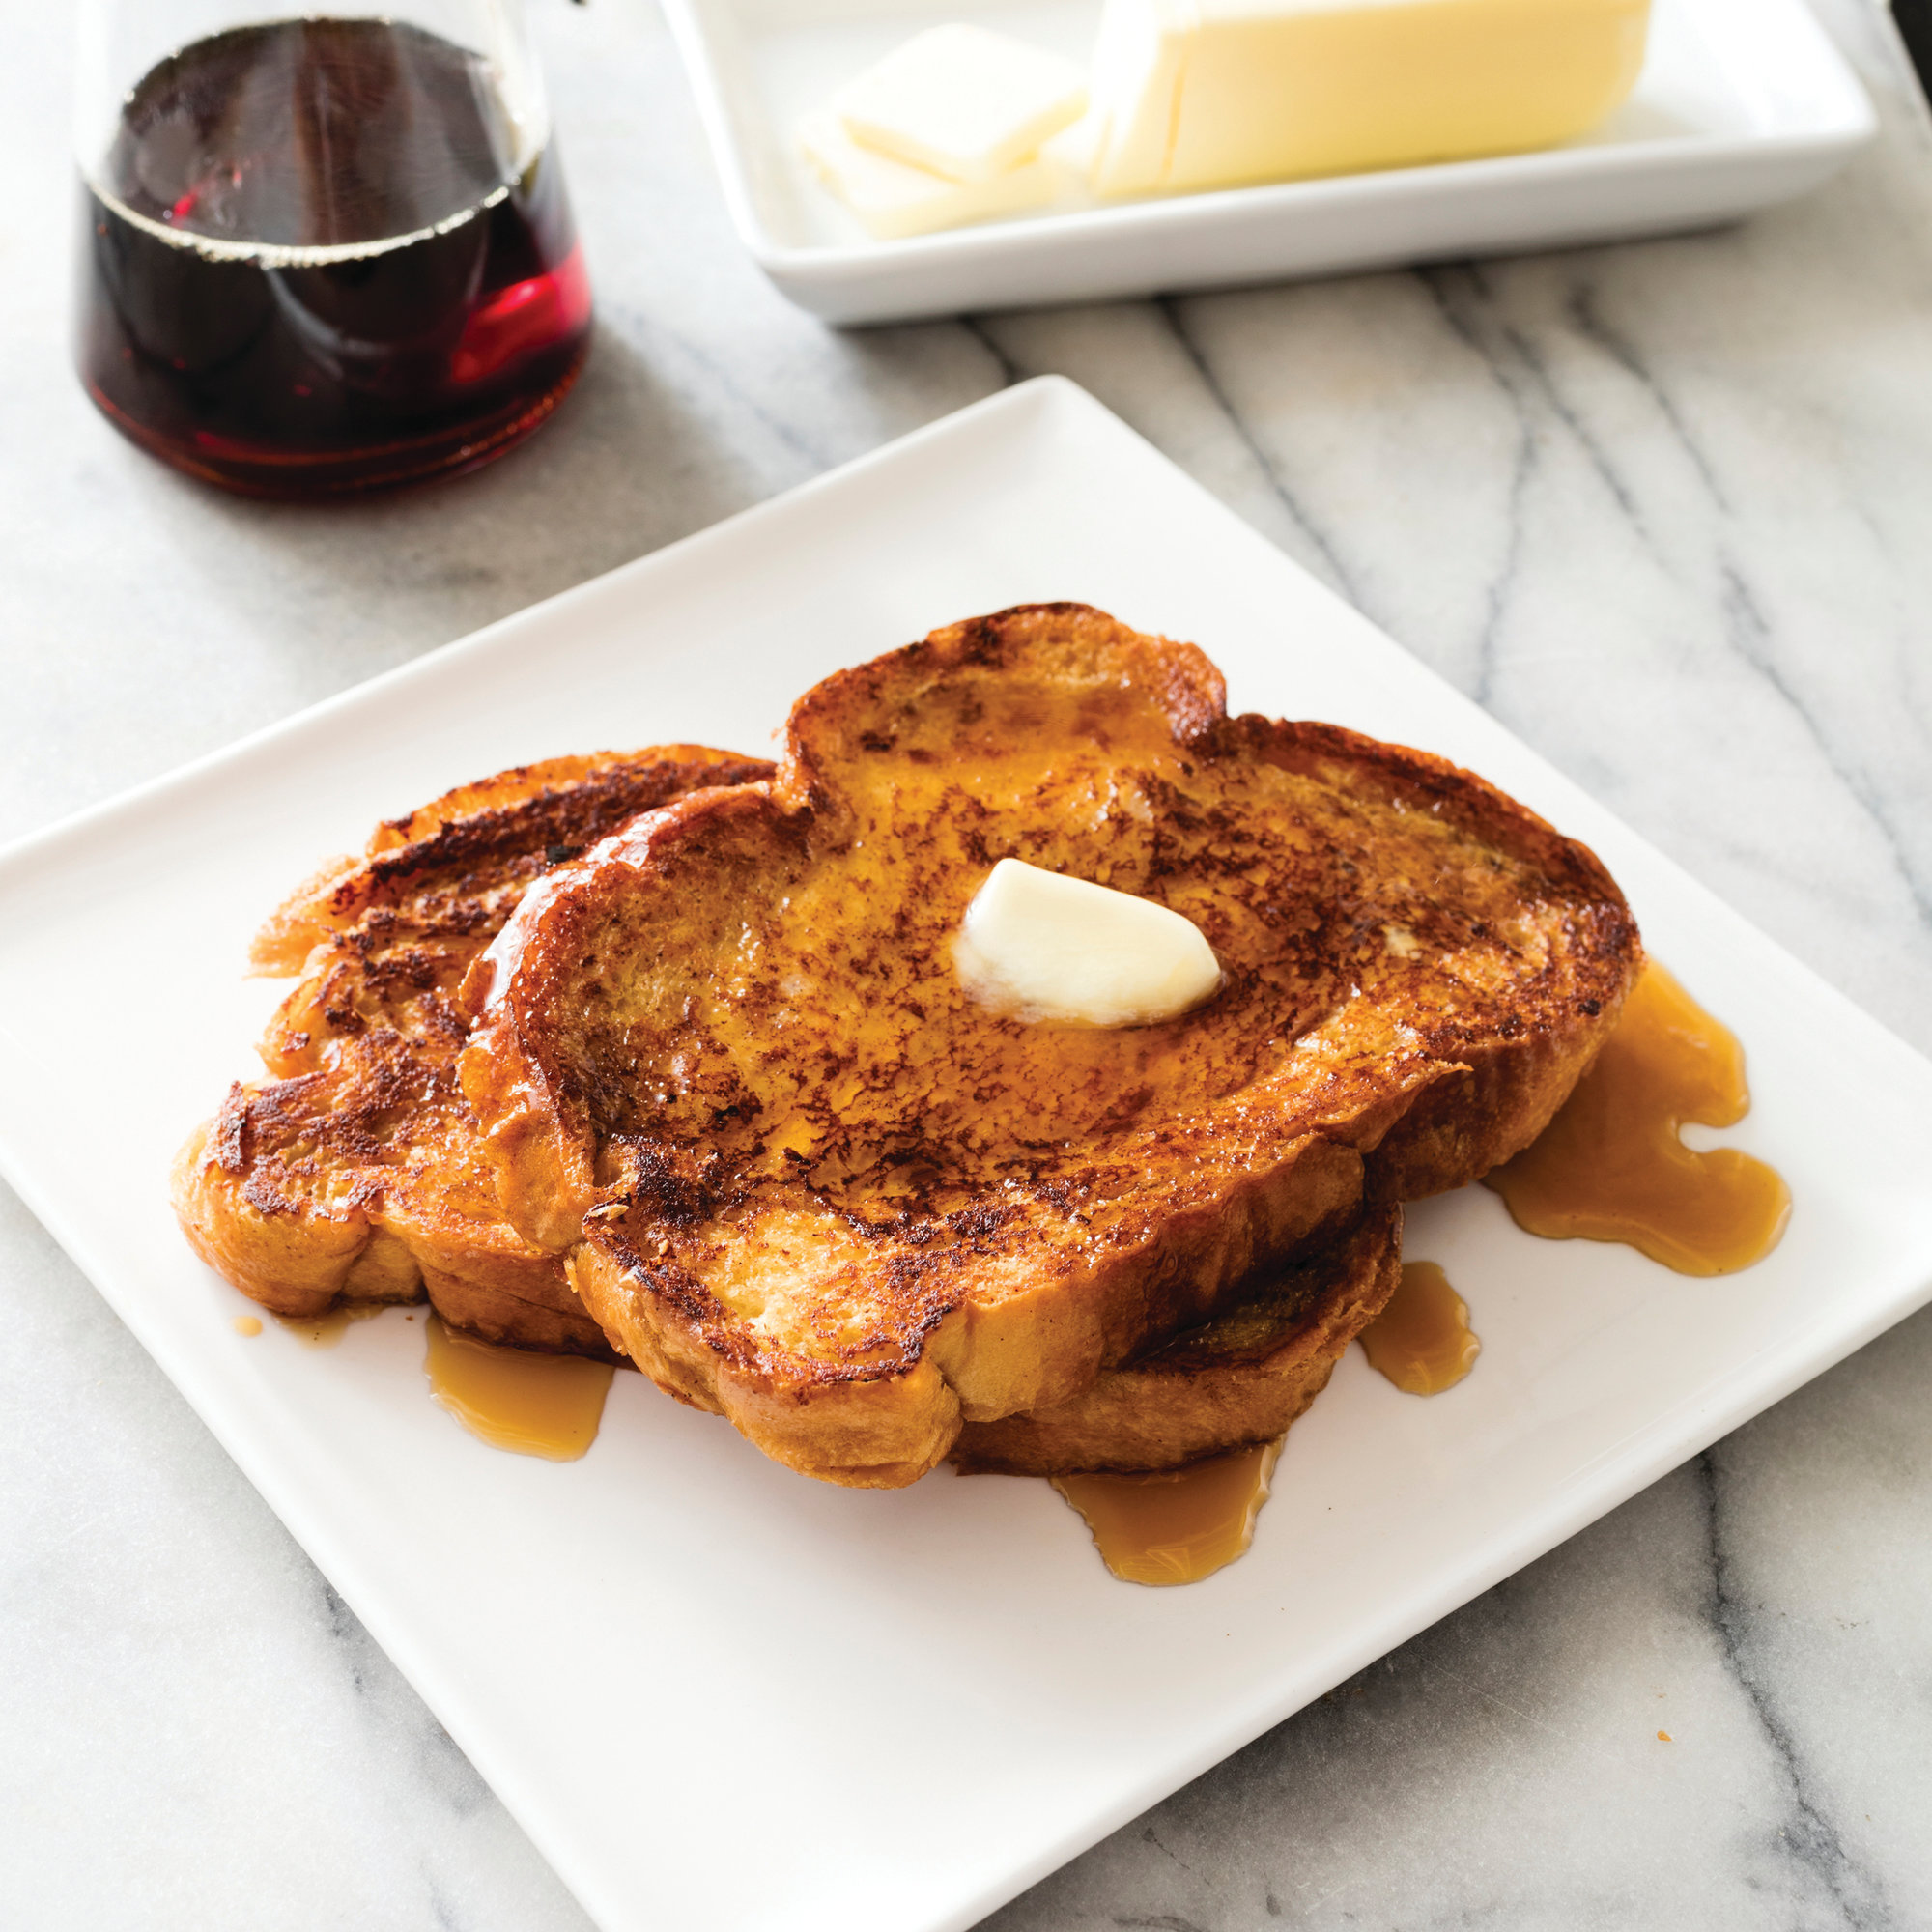 Foolproof French Toast Recipe Yields Crisp Slices The